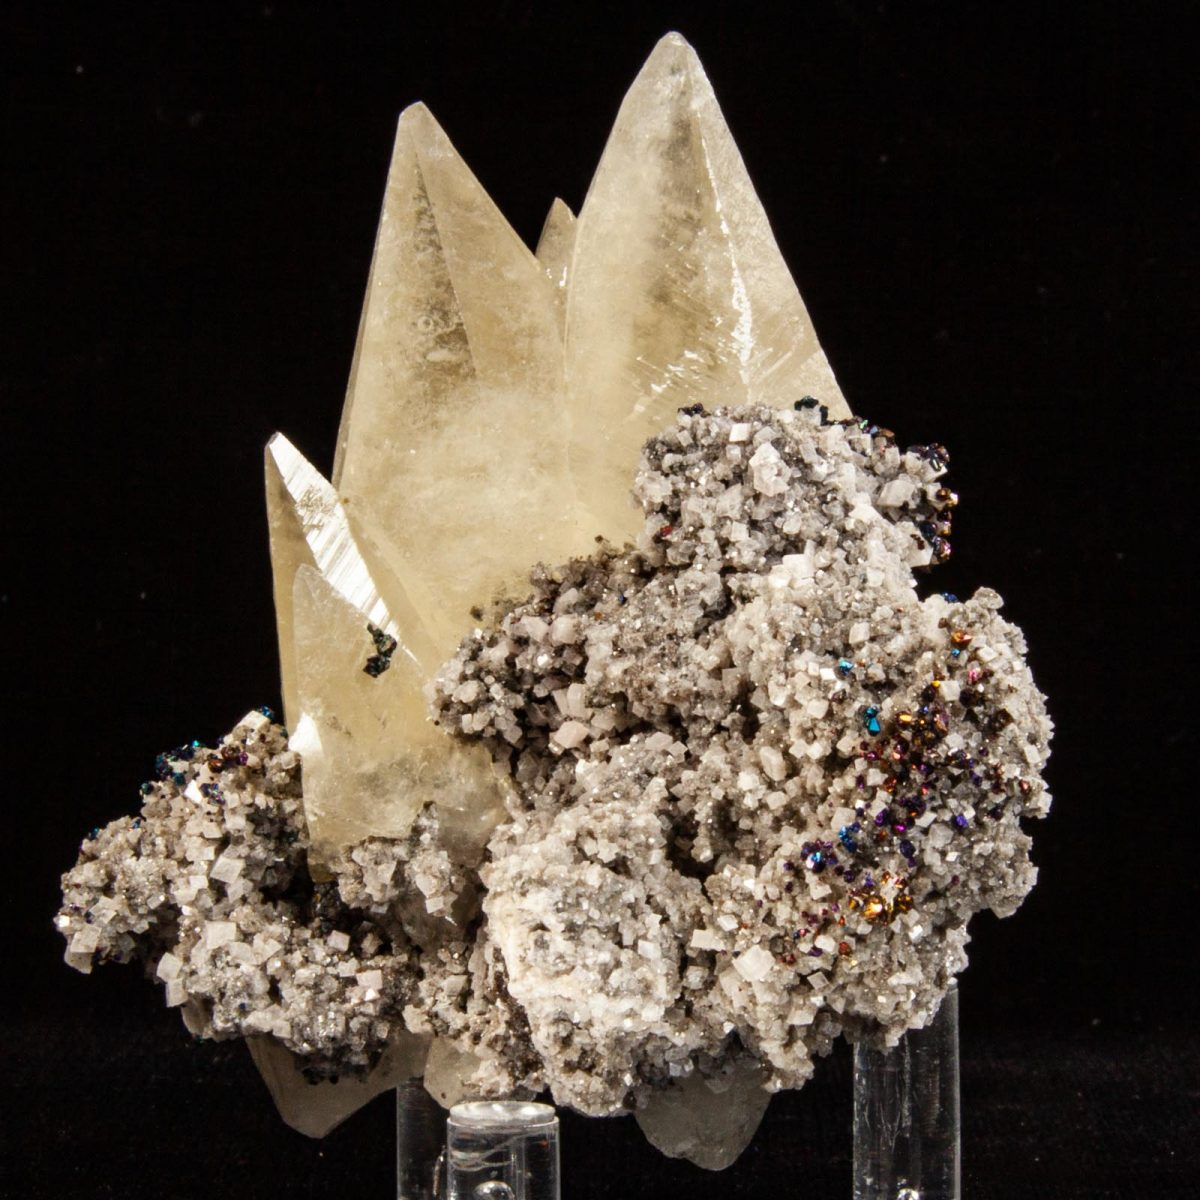 Calcite with Chalcopyrite and Dolomite